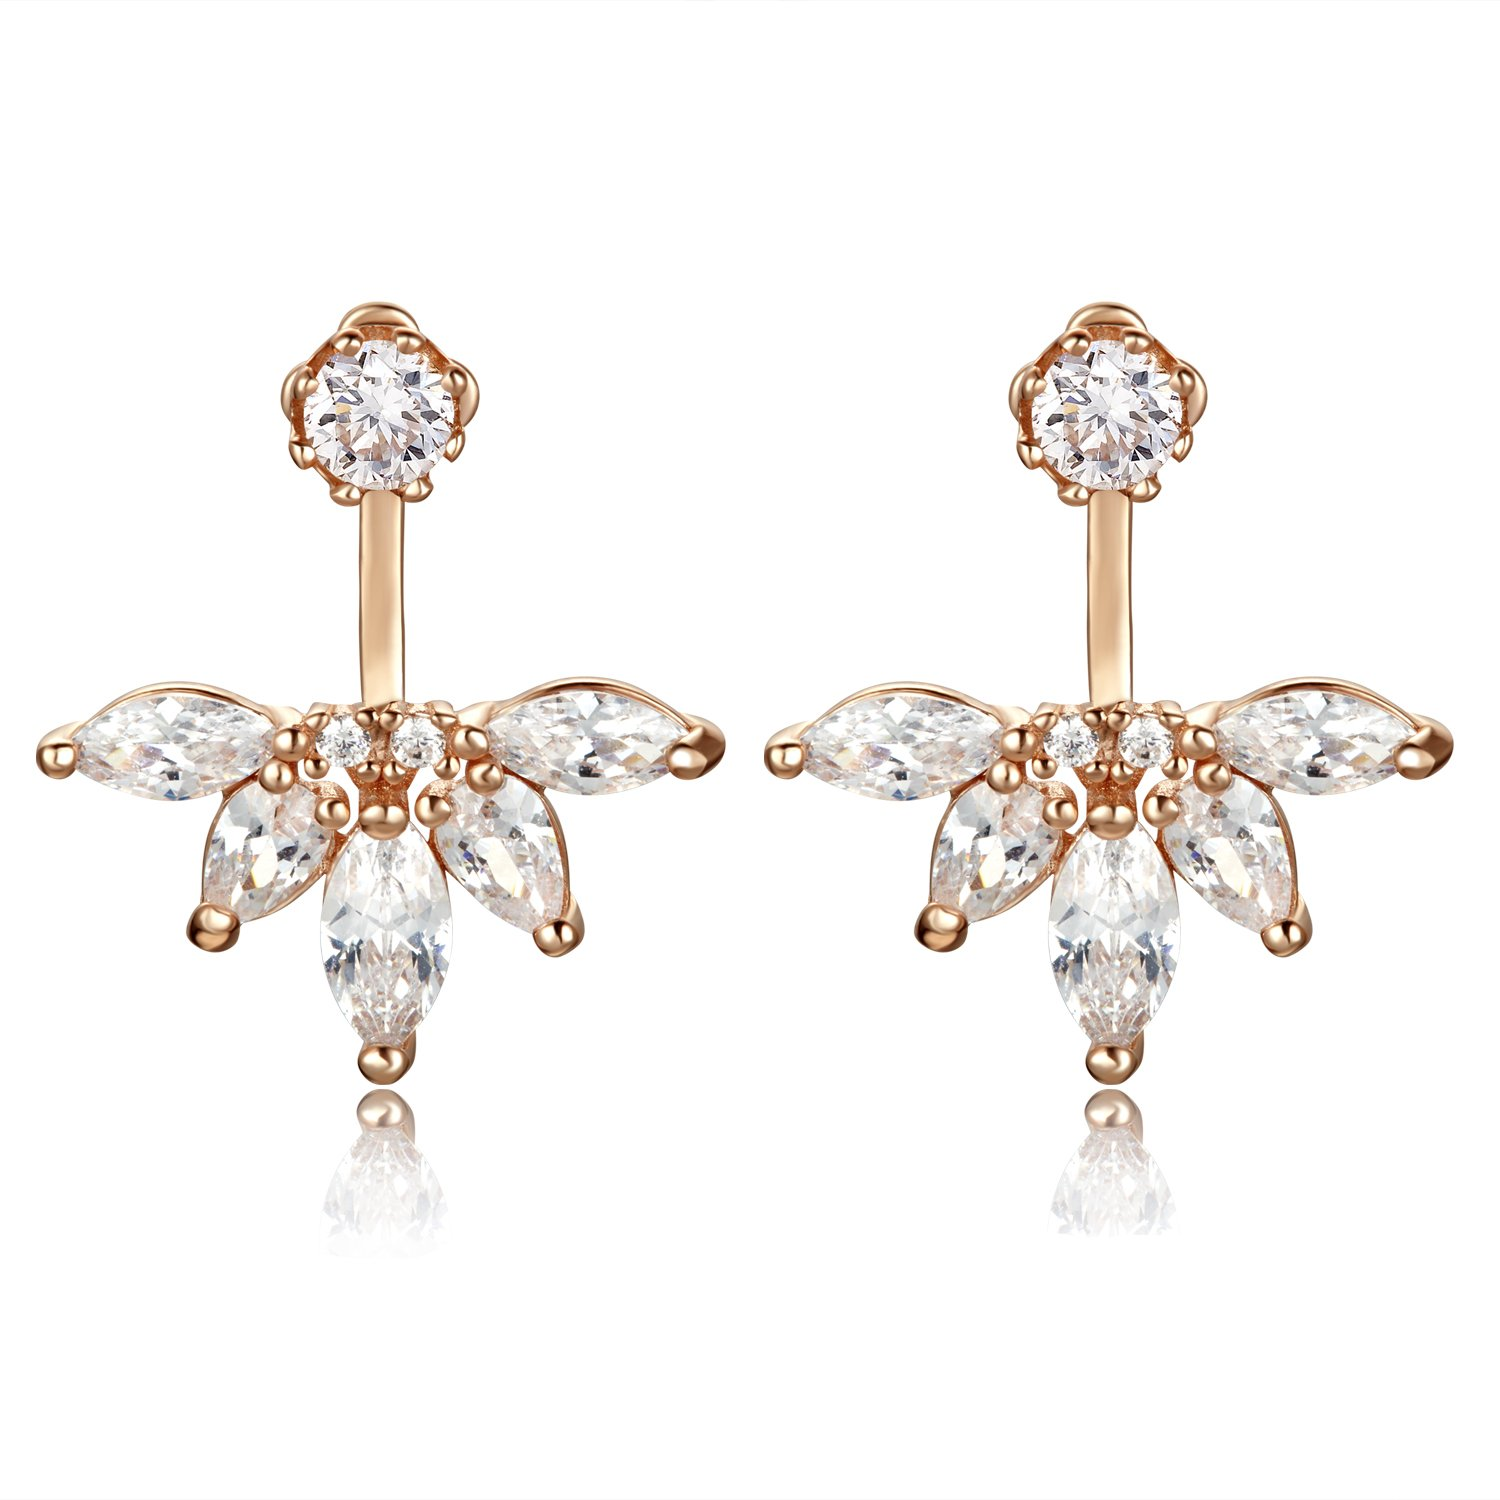 Sterling Silver Earrings with Crystal,DOKINCIK, Rose Gold Stud Earring sets for Women and Girls